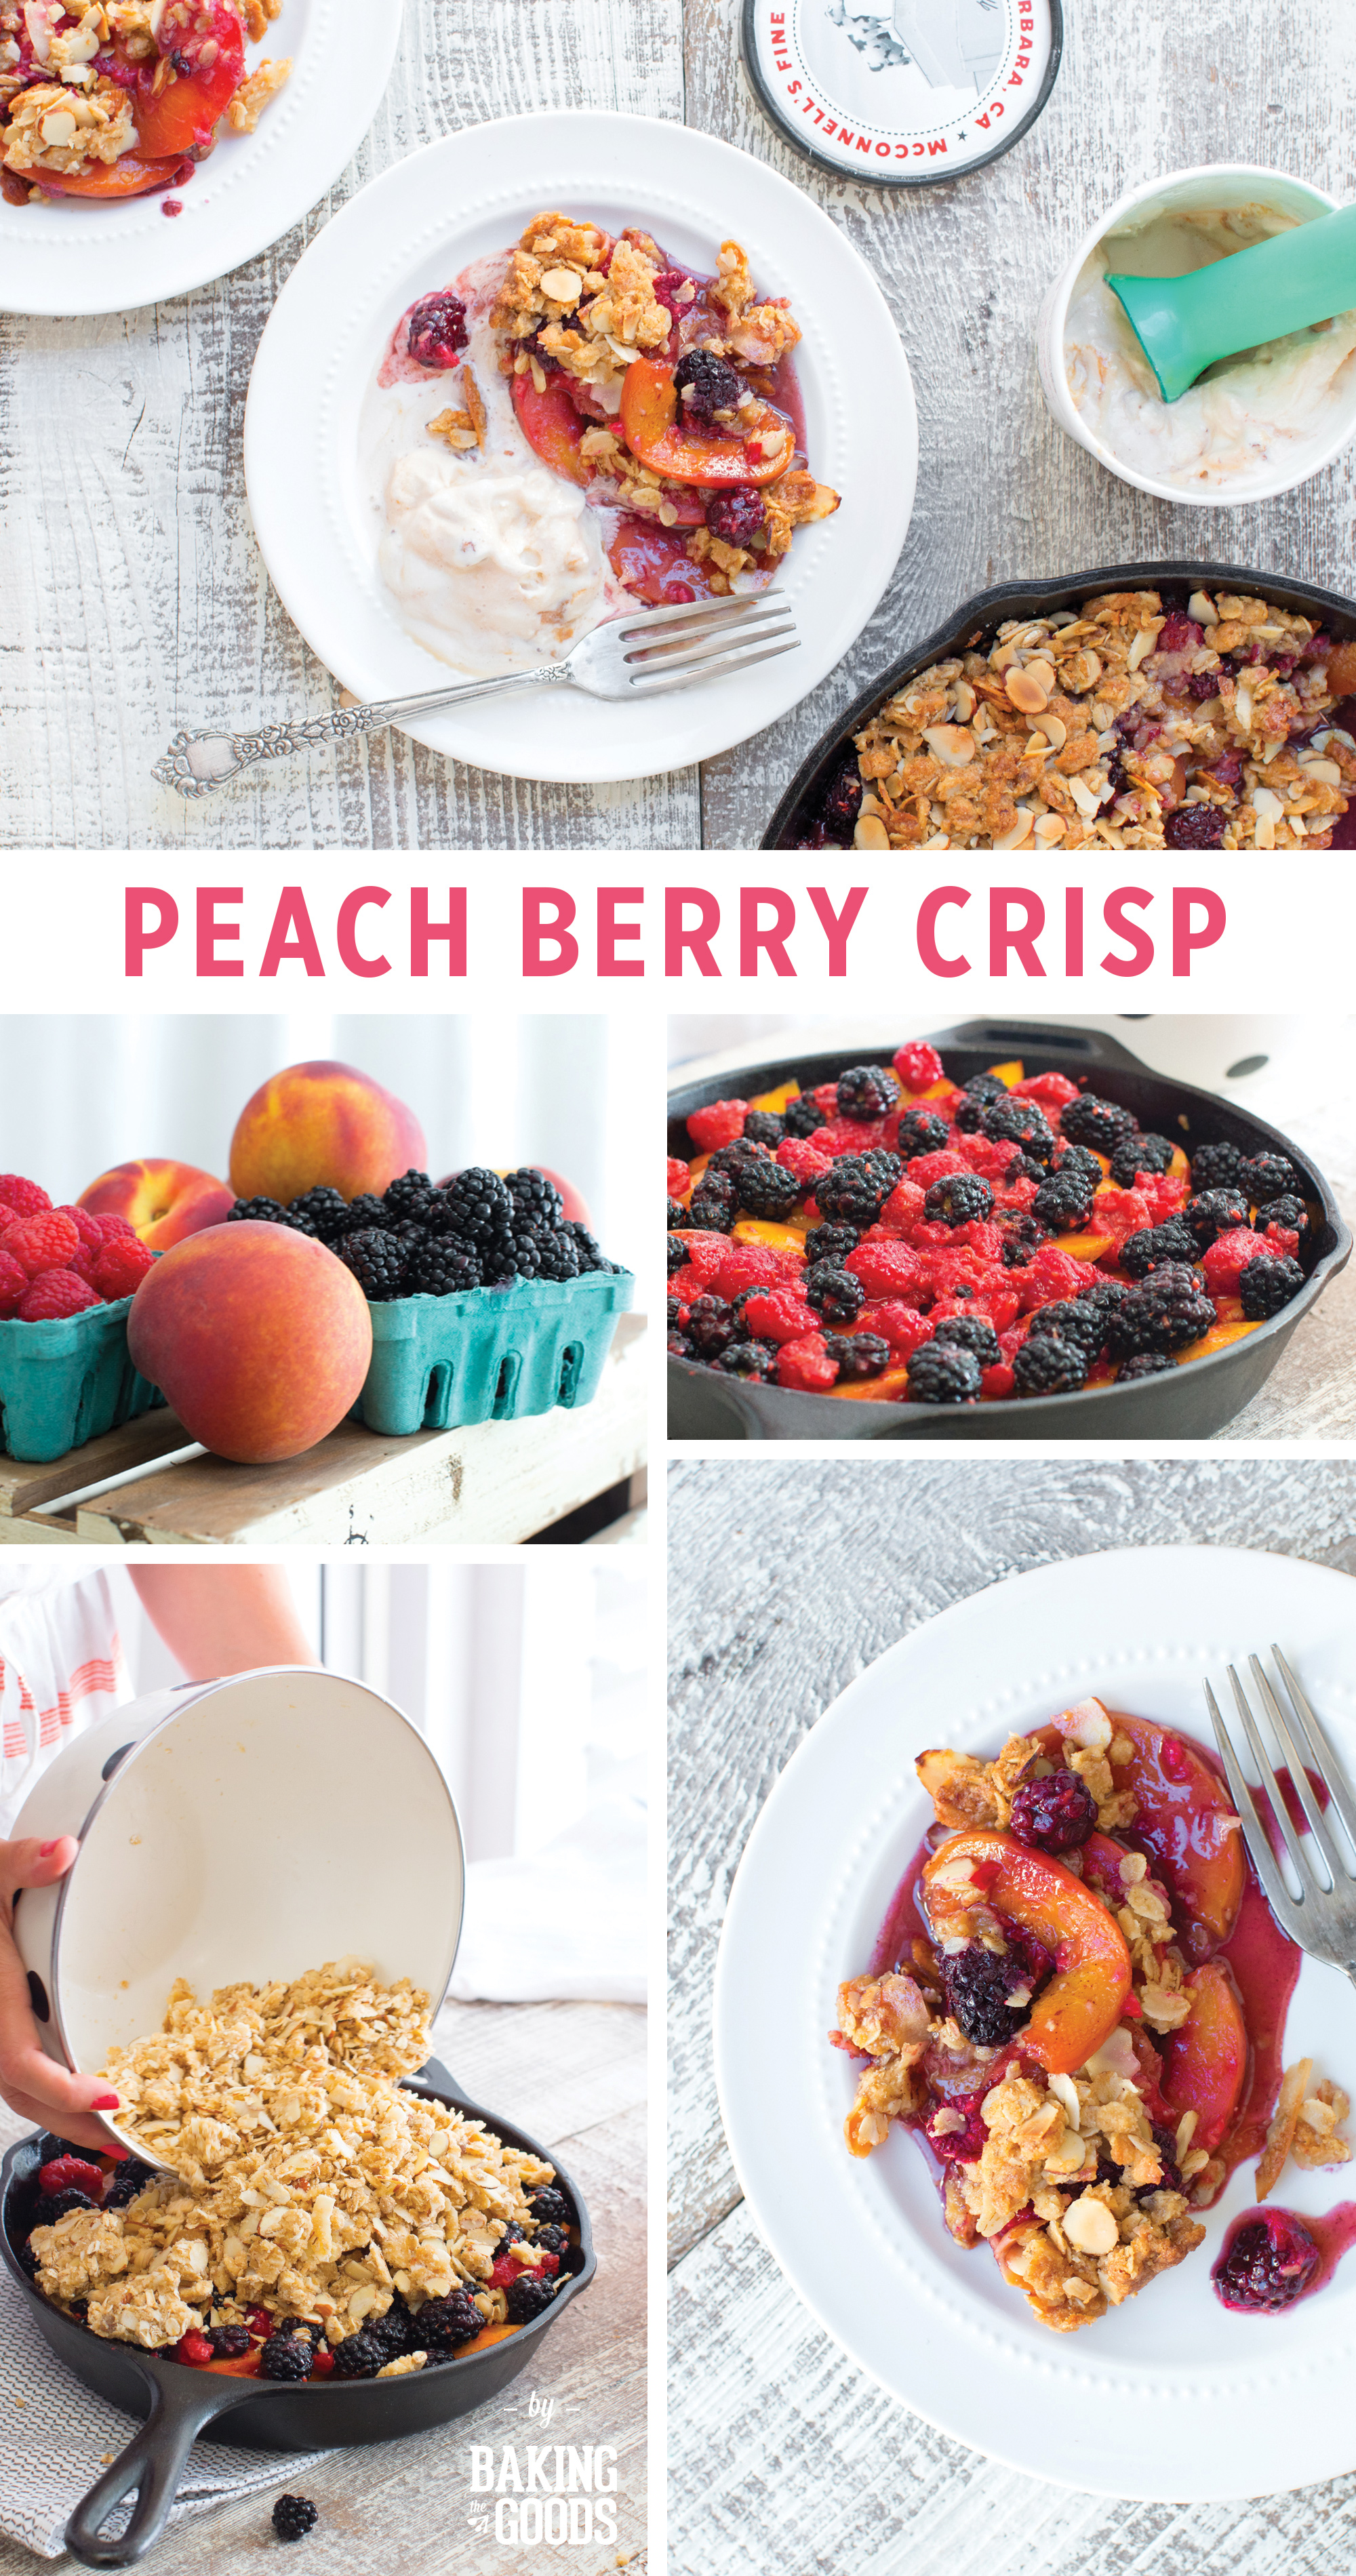 Peach Berry Crisp